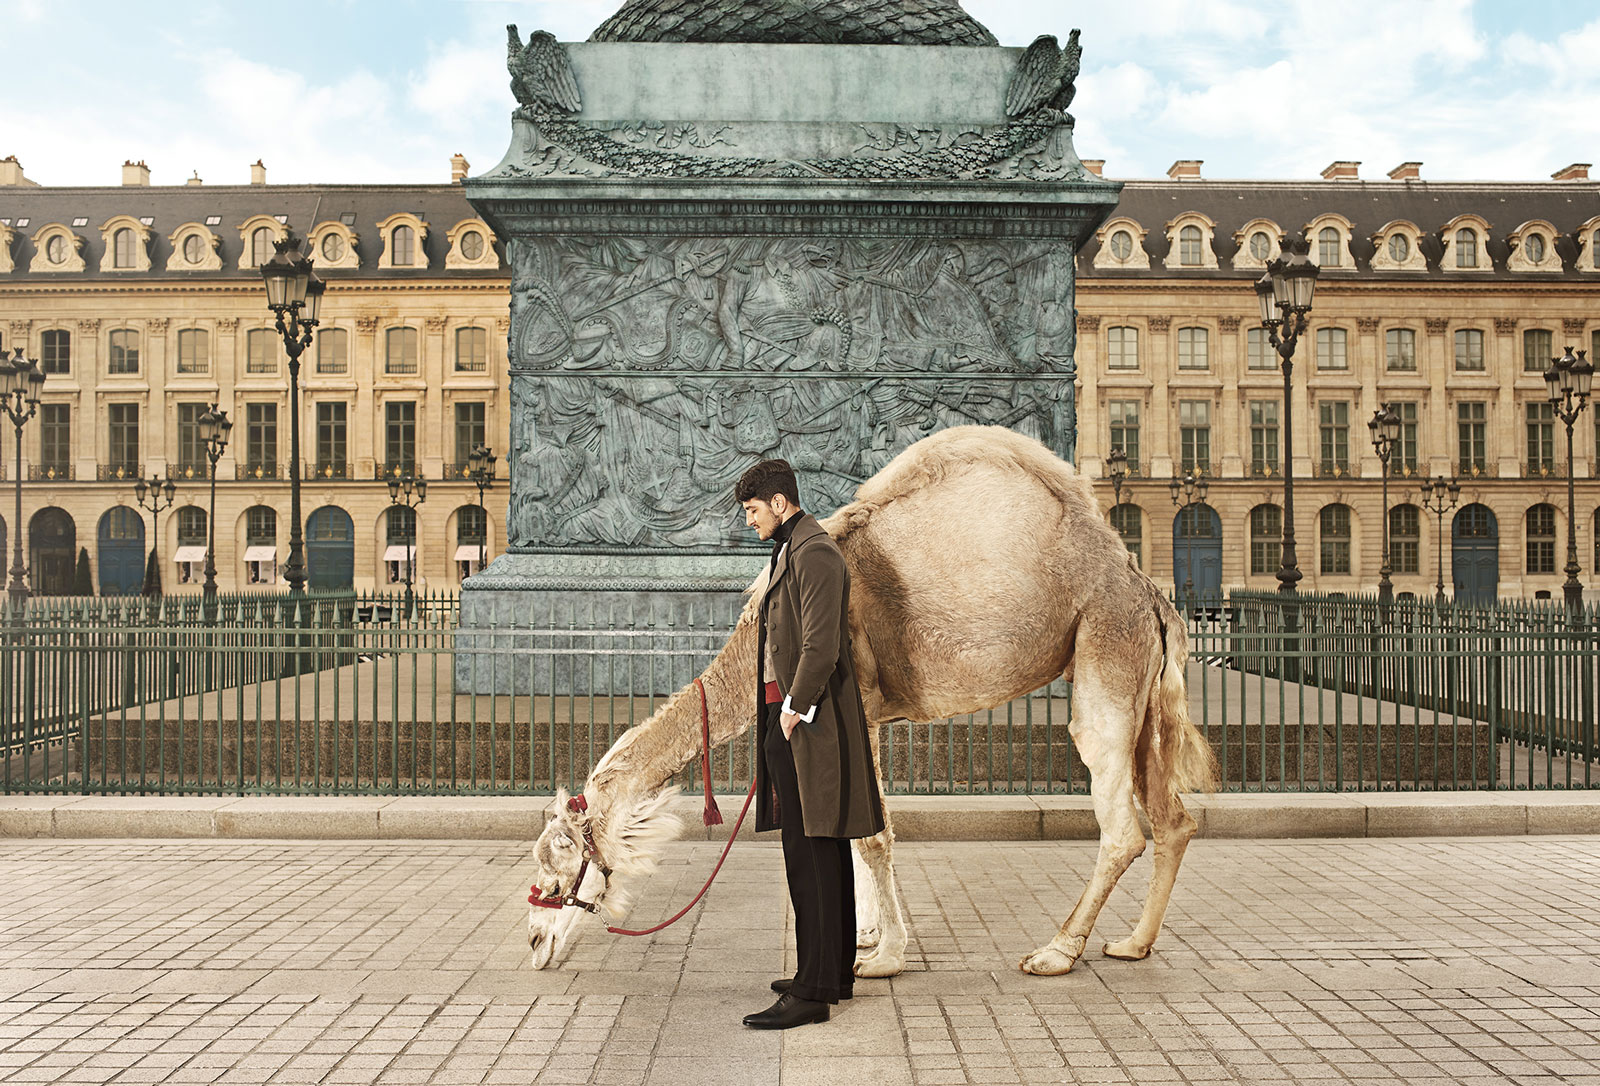 Jeroboam-Perfume-Campaign-presented-by-LE-MILE-Magazine-published-by-le-mile-studios-.jpg